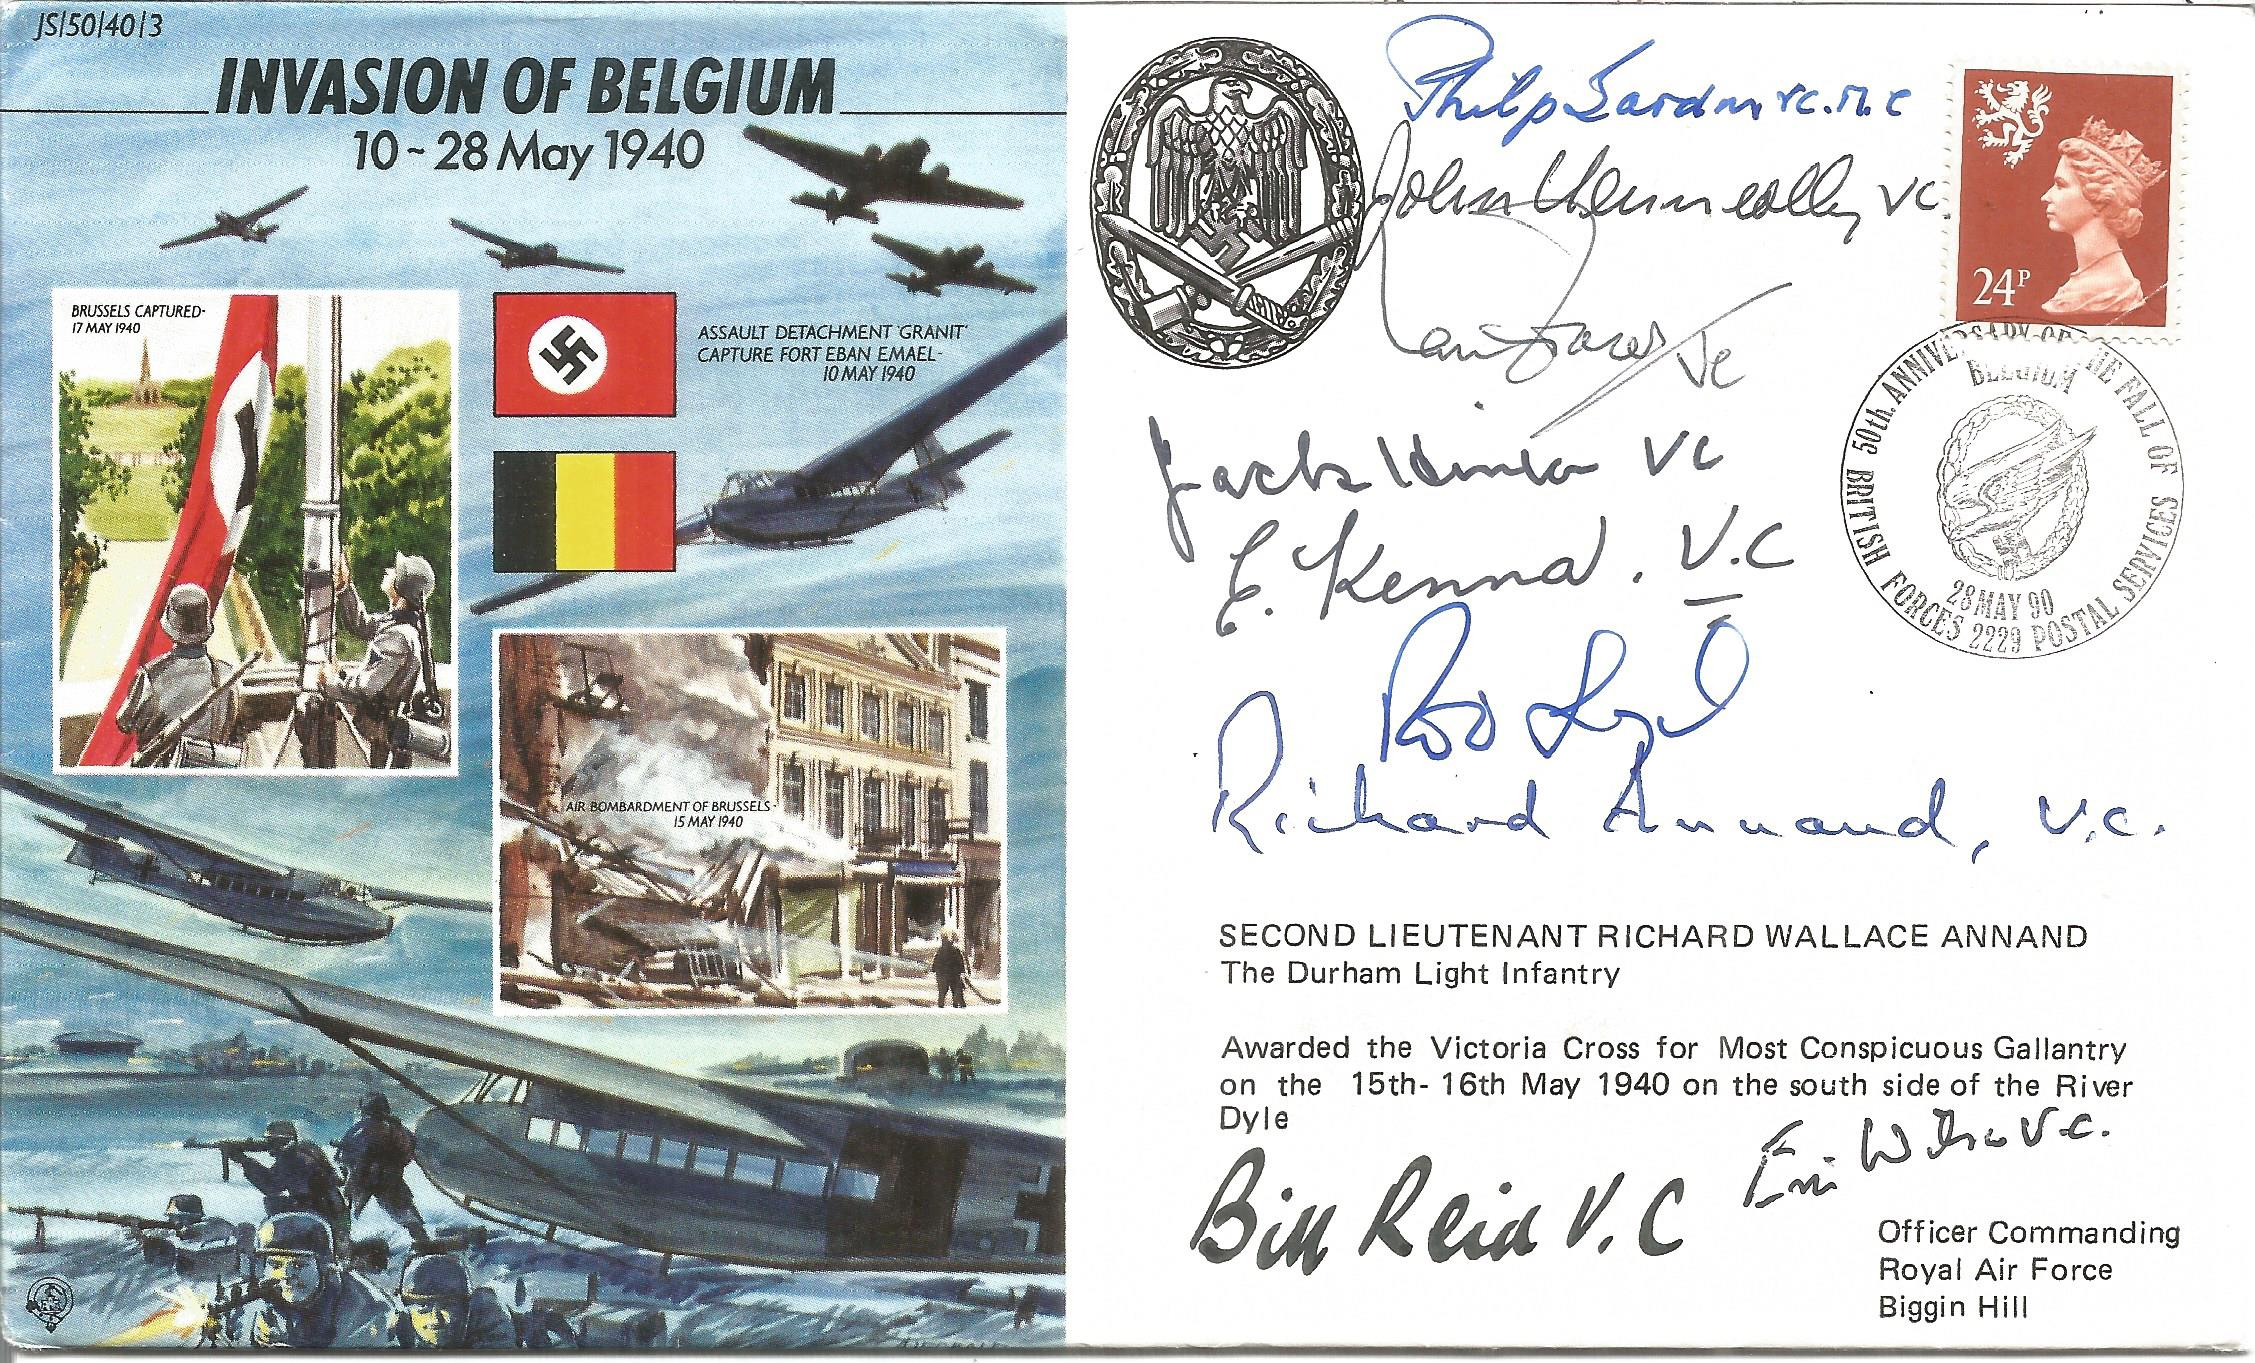 John Kenneally VC, Ian Fraser VC, Richard Annand VC, Bill Reid VC plus 5 others signed Invasion of